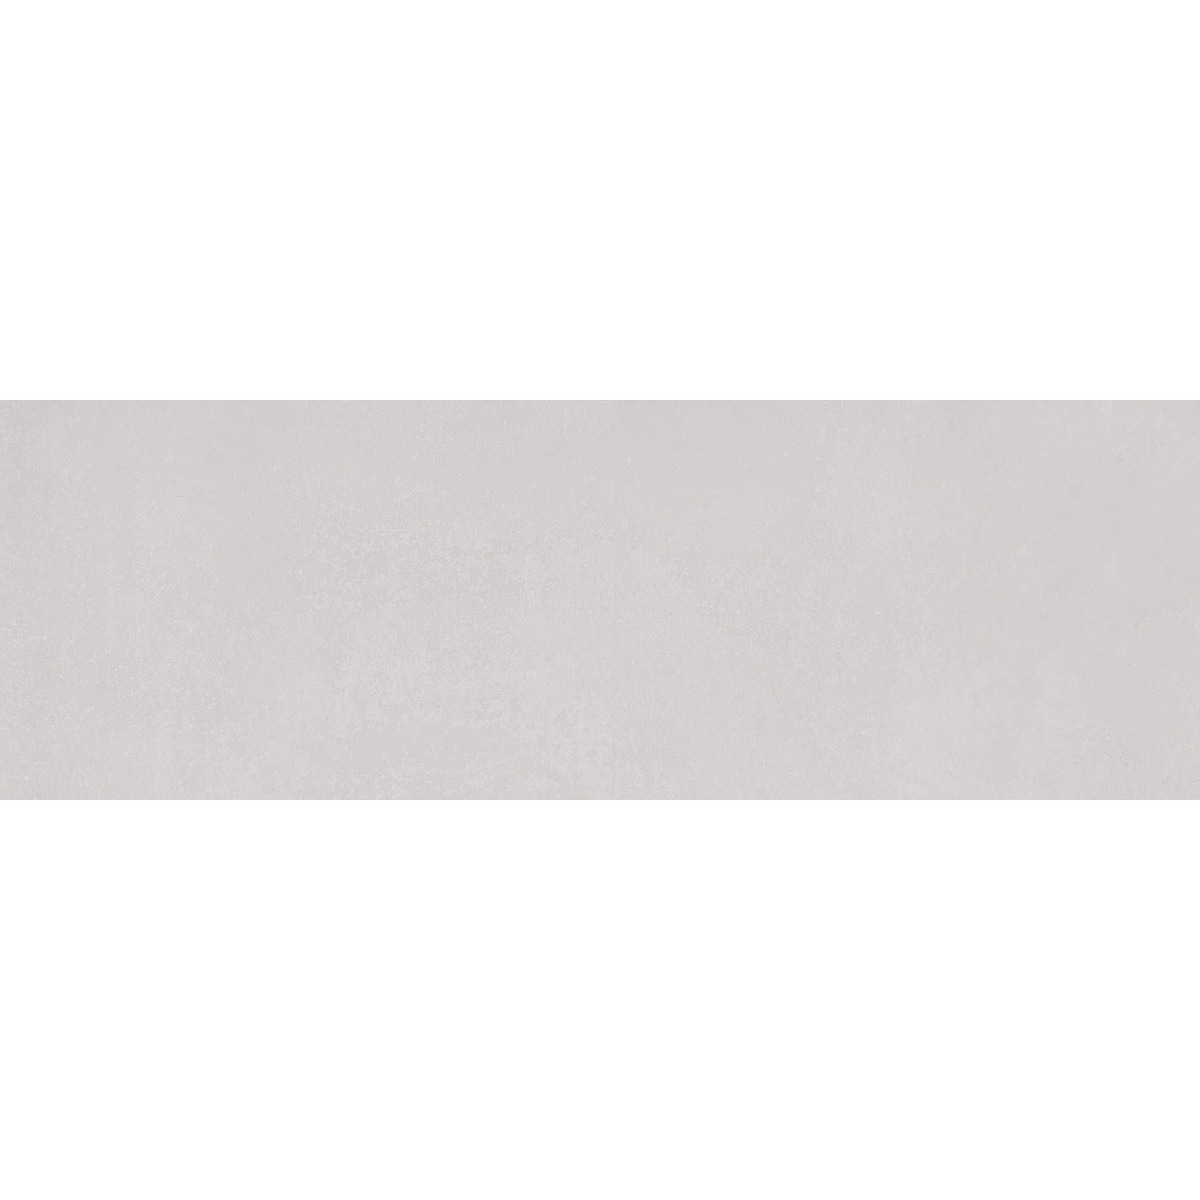 Cifre Neutra White Natural texture Carrelage mural blanc 30x90cm - SW07310332-3 - Sawiday.fr